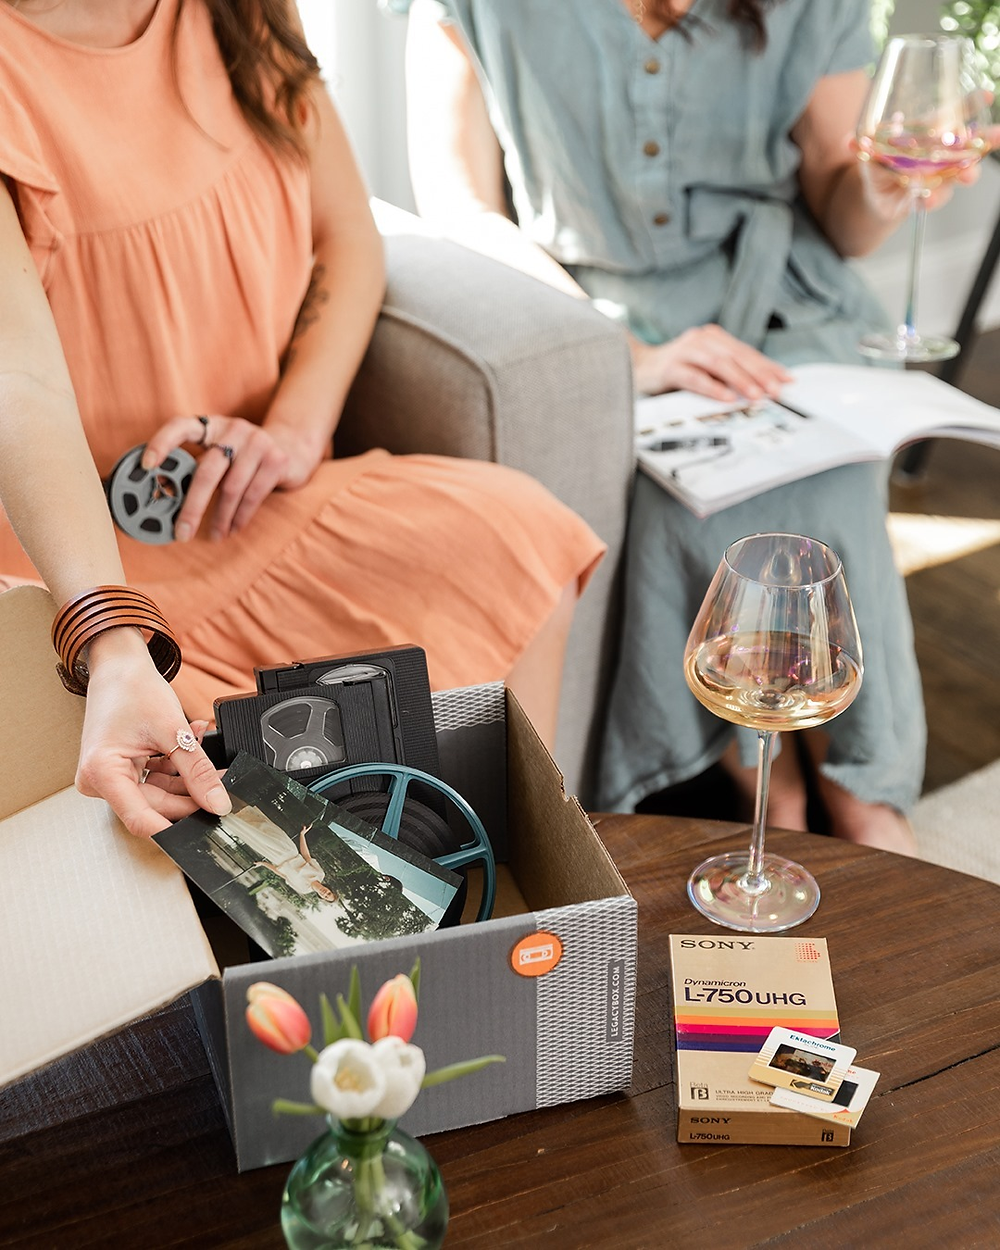 legacy box memory preservation kit with vhs on a table with a glass of wine